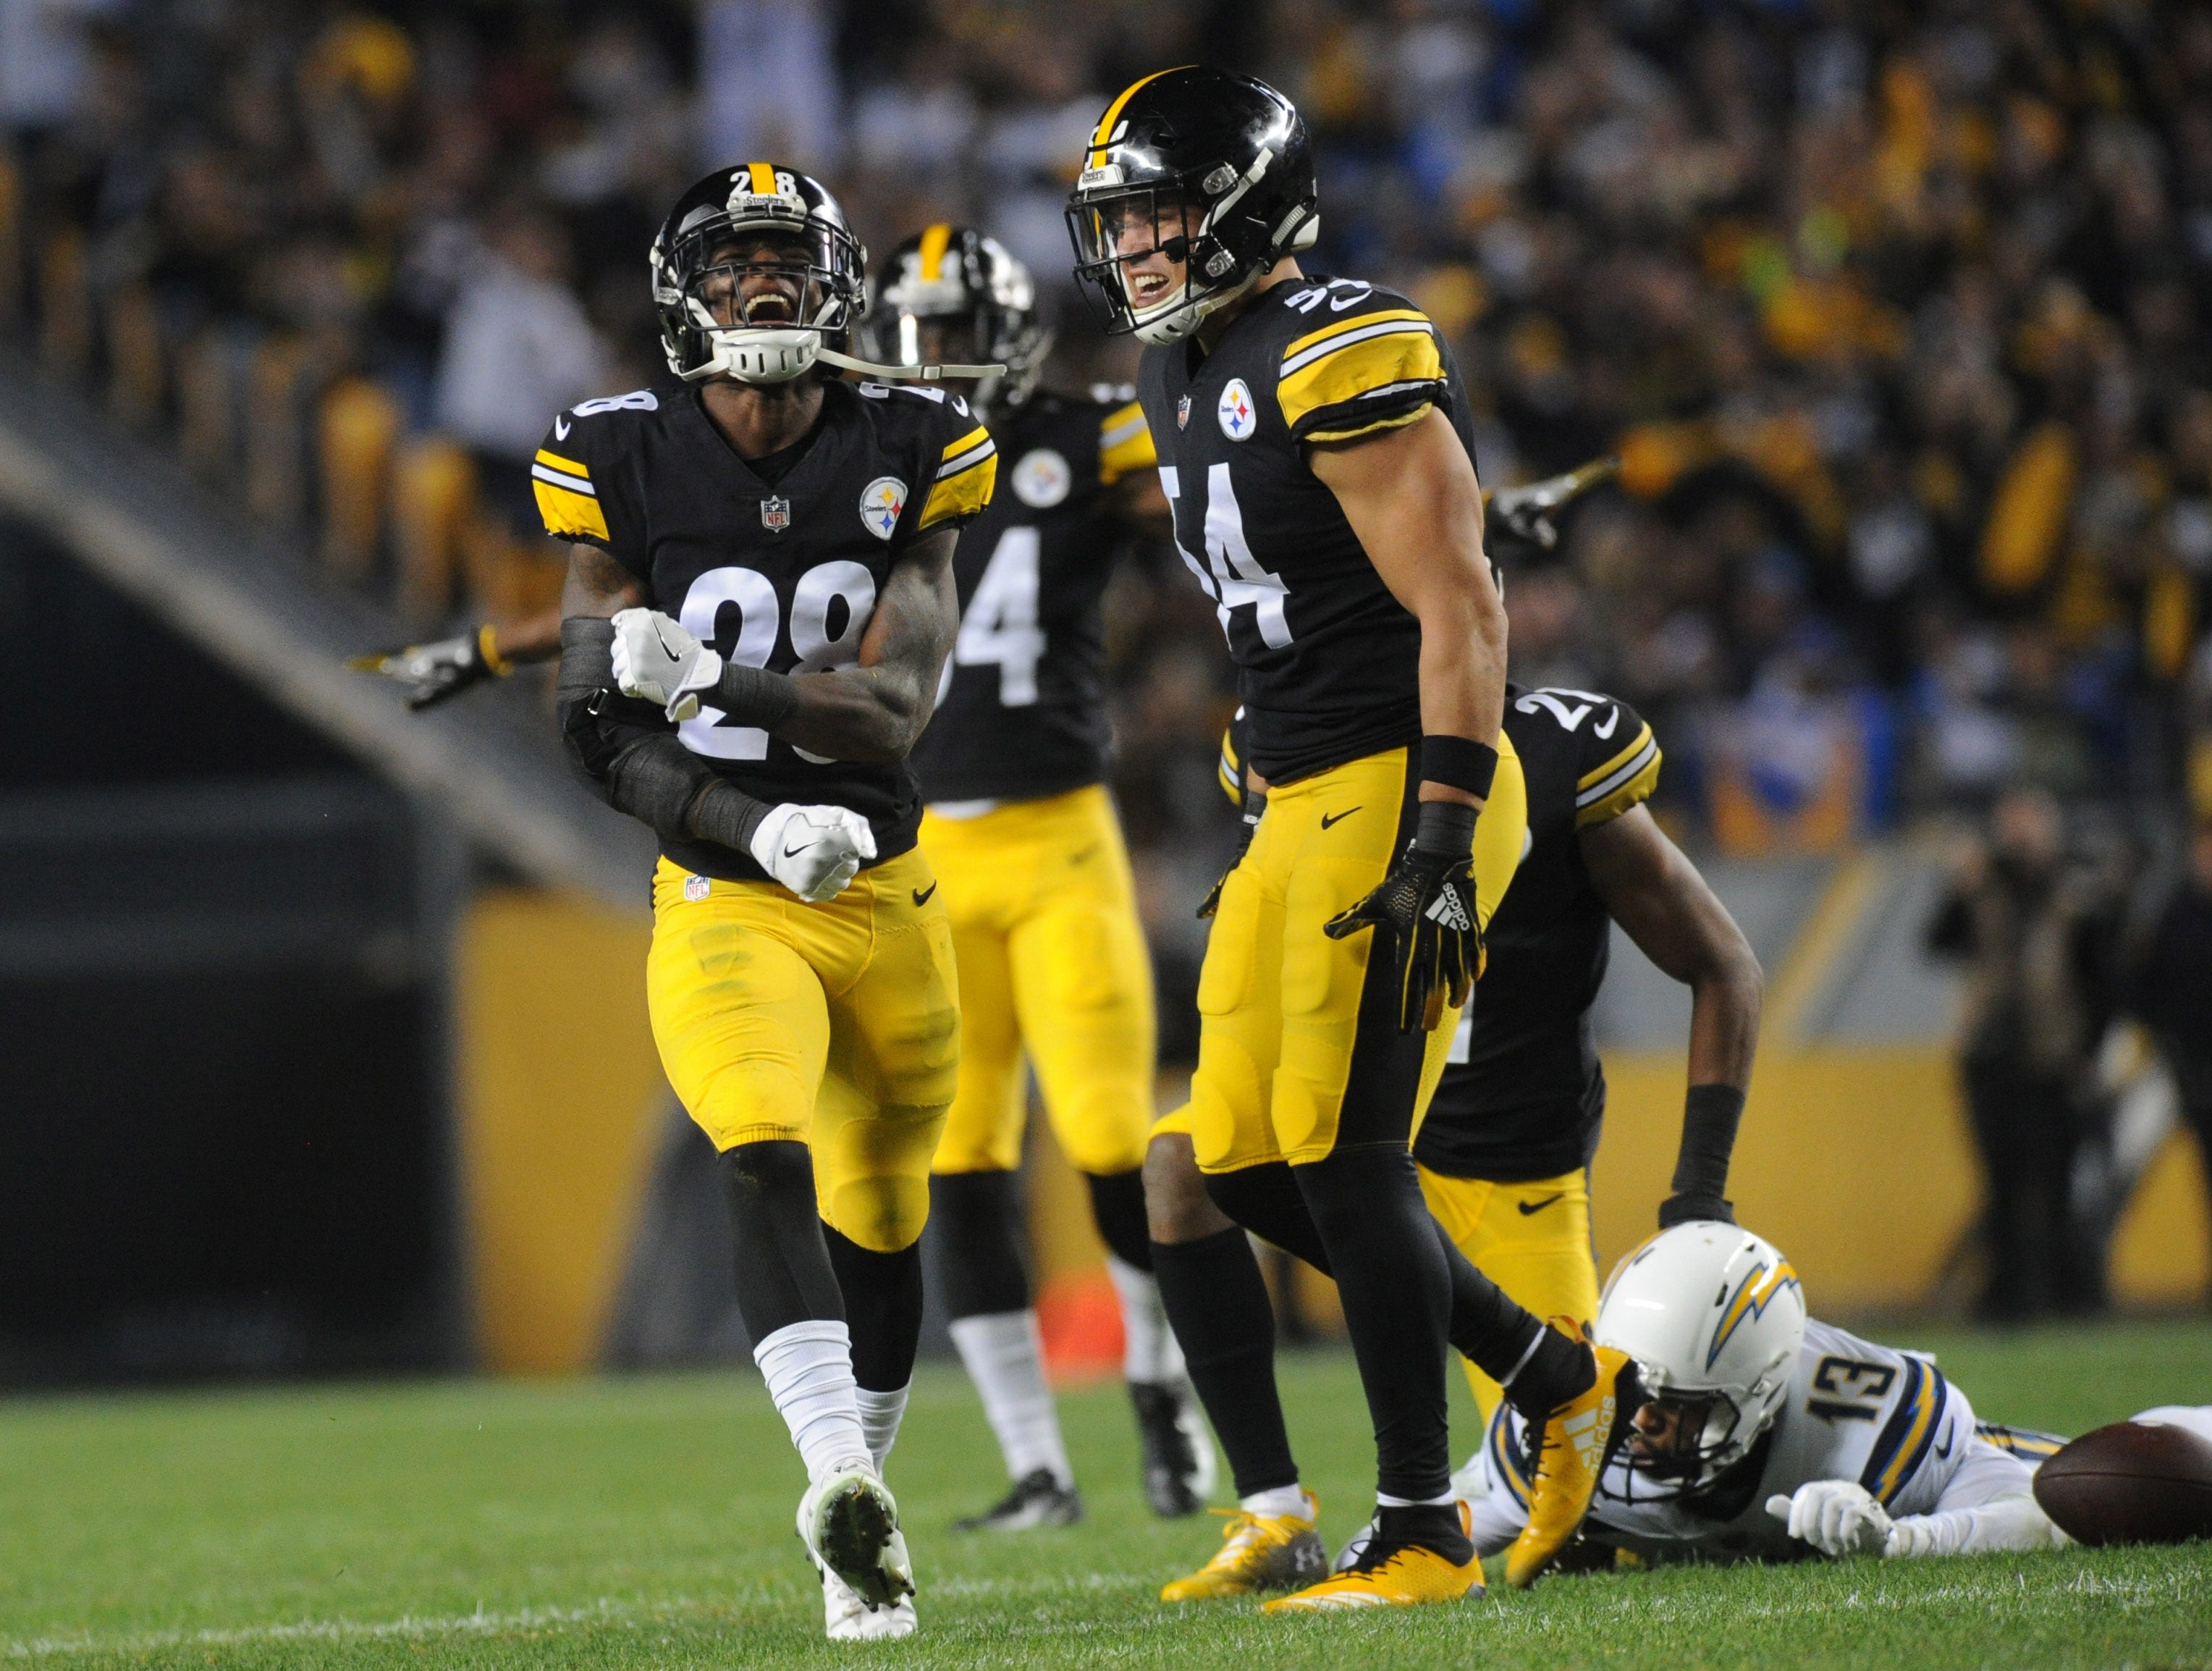 Steelers defenders react after a play in the first quarter.